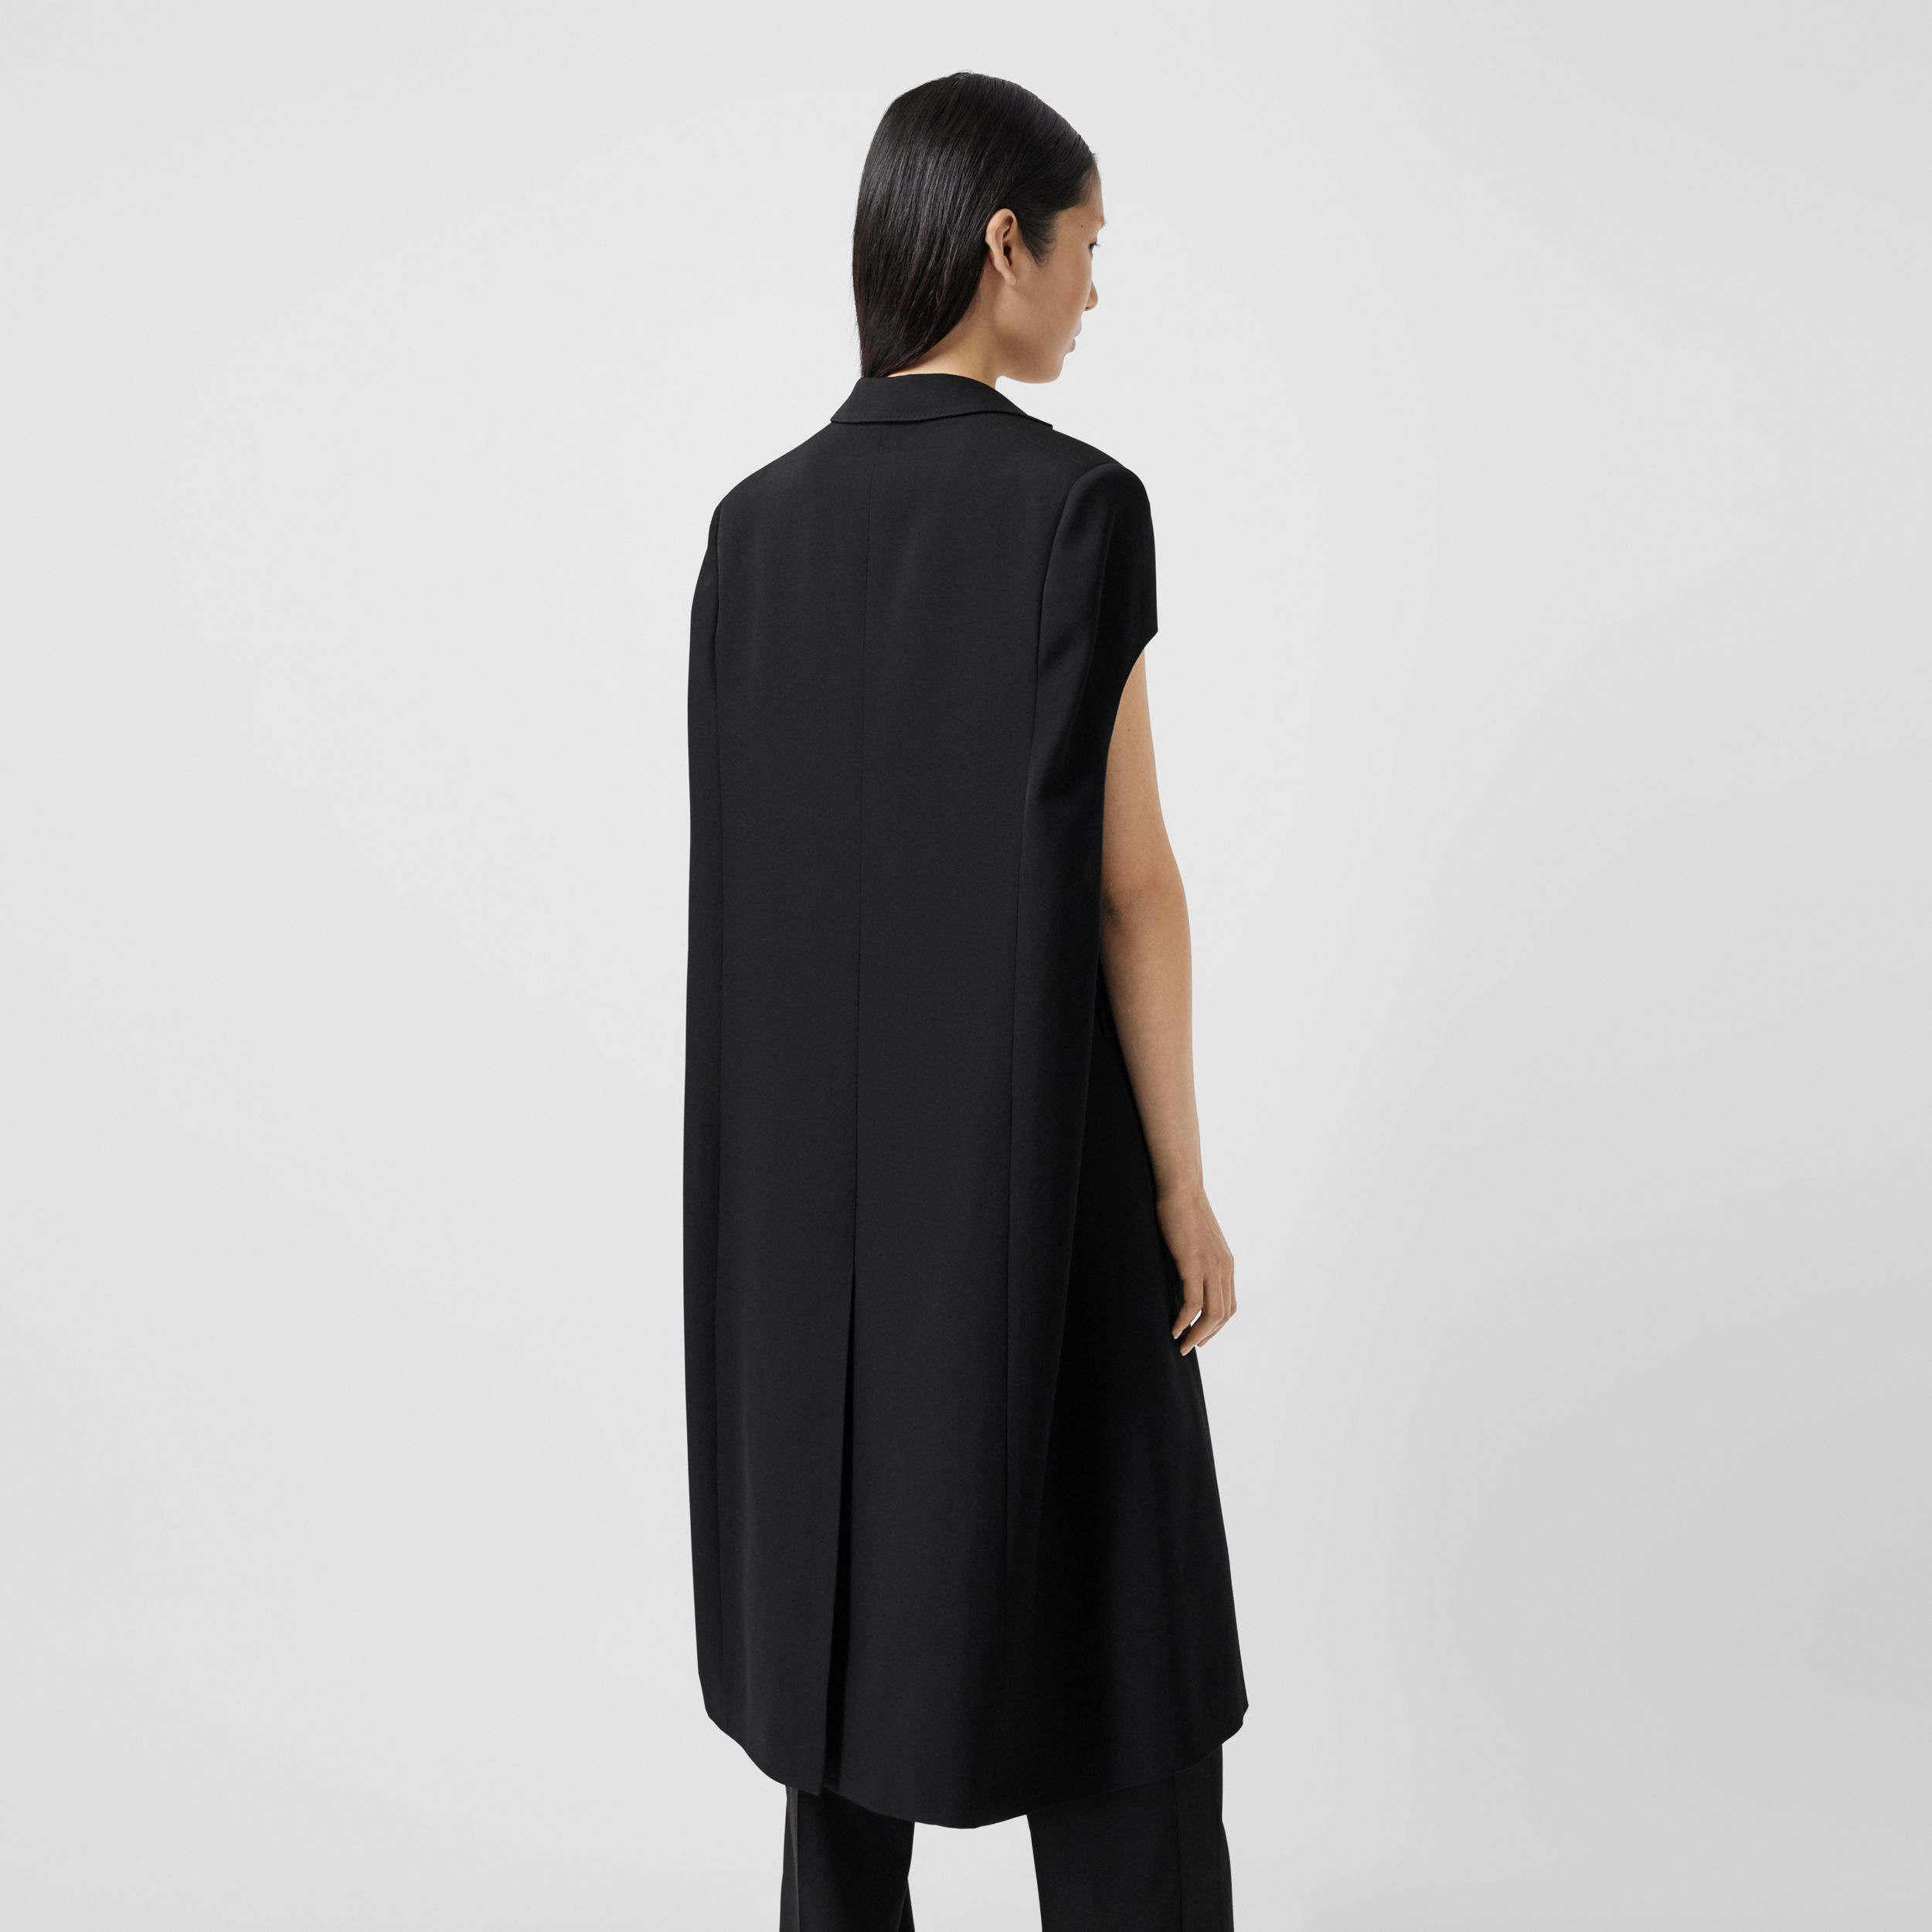 Grain De Poudre Wool Tailored Cape in Black - Women | Burberry Australia - 3